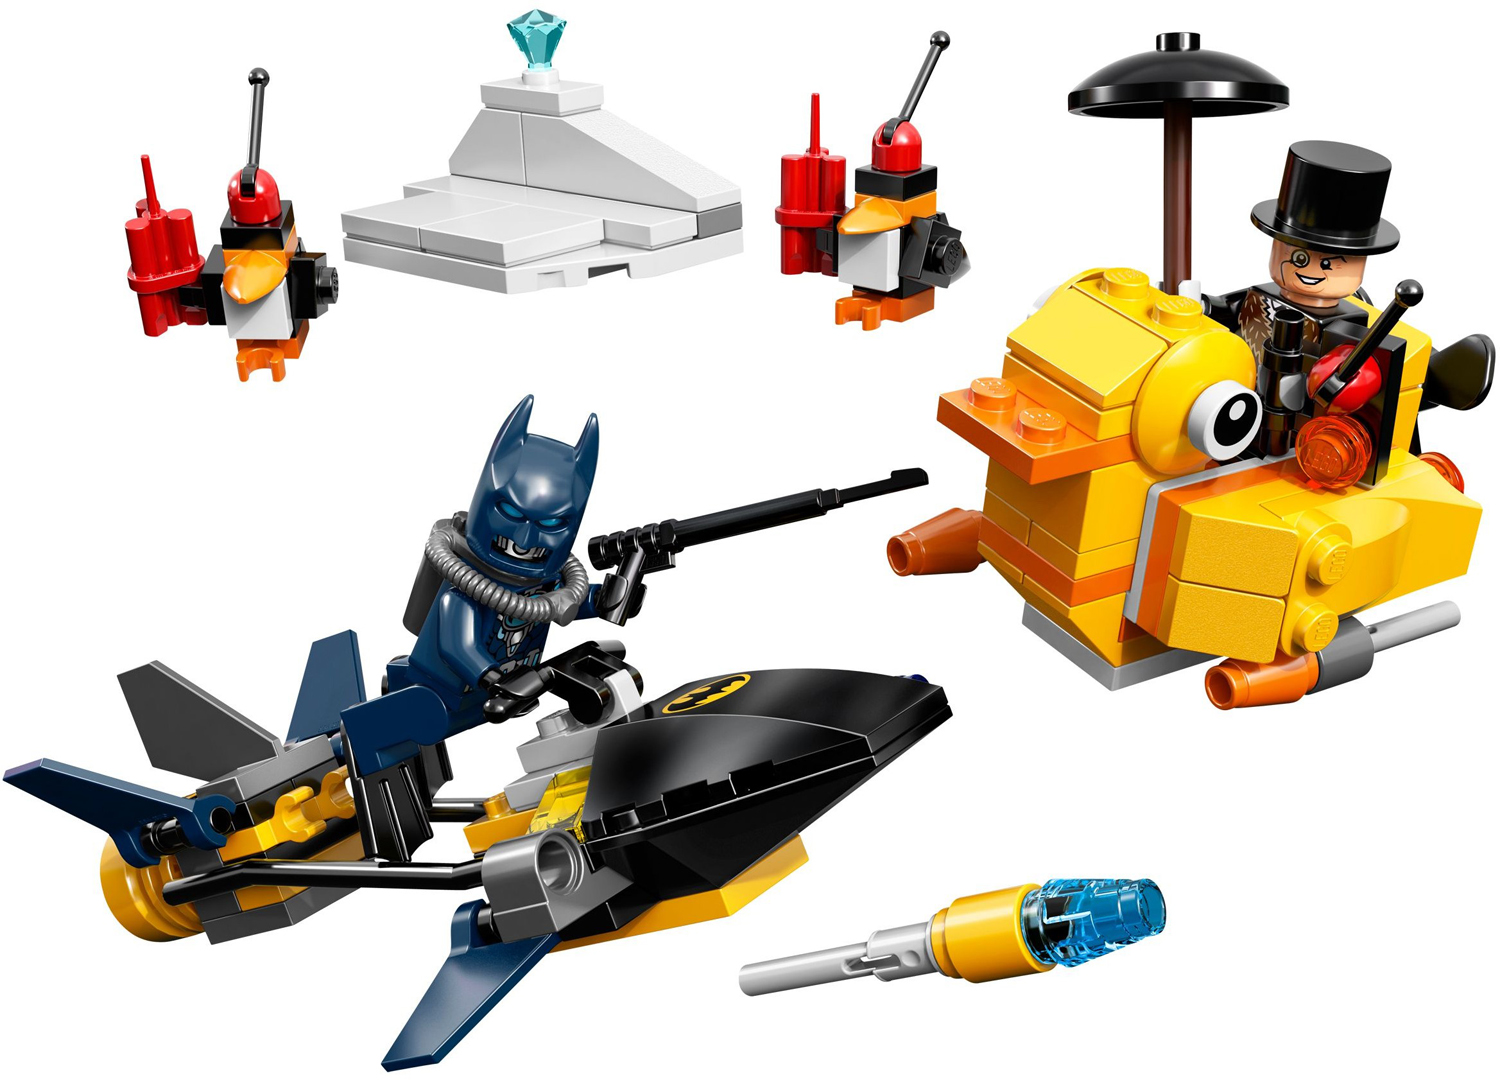 Rumored Lego Dc Comics Superheroes Sets For 2020